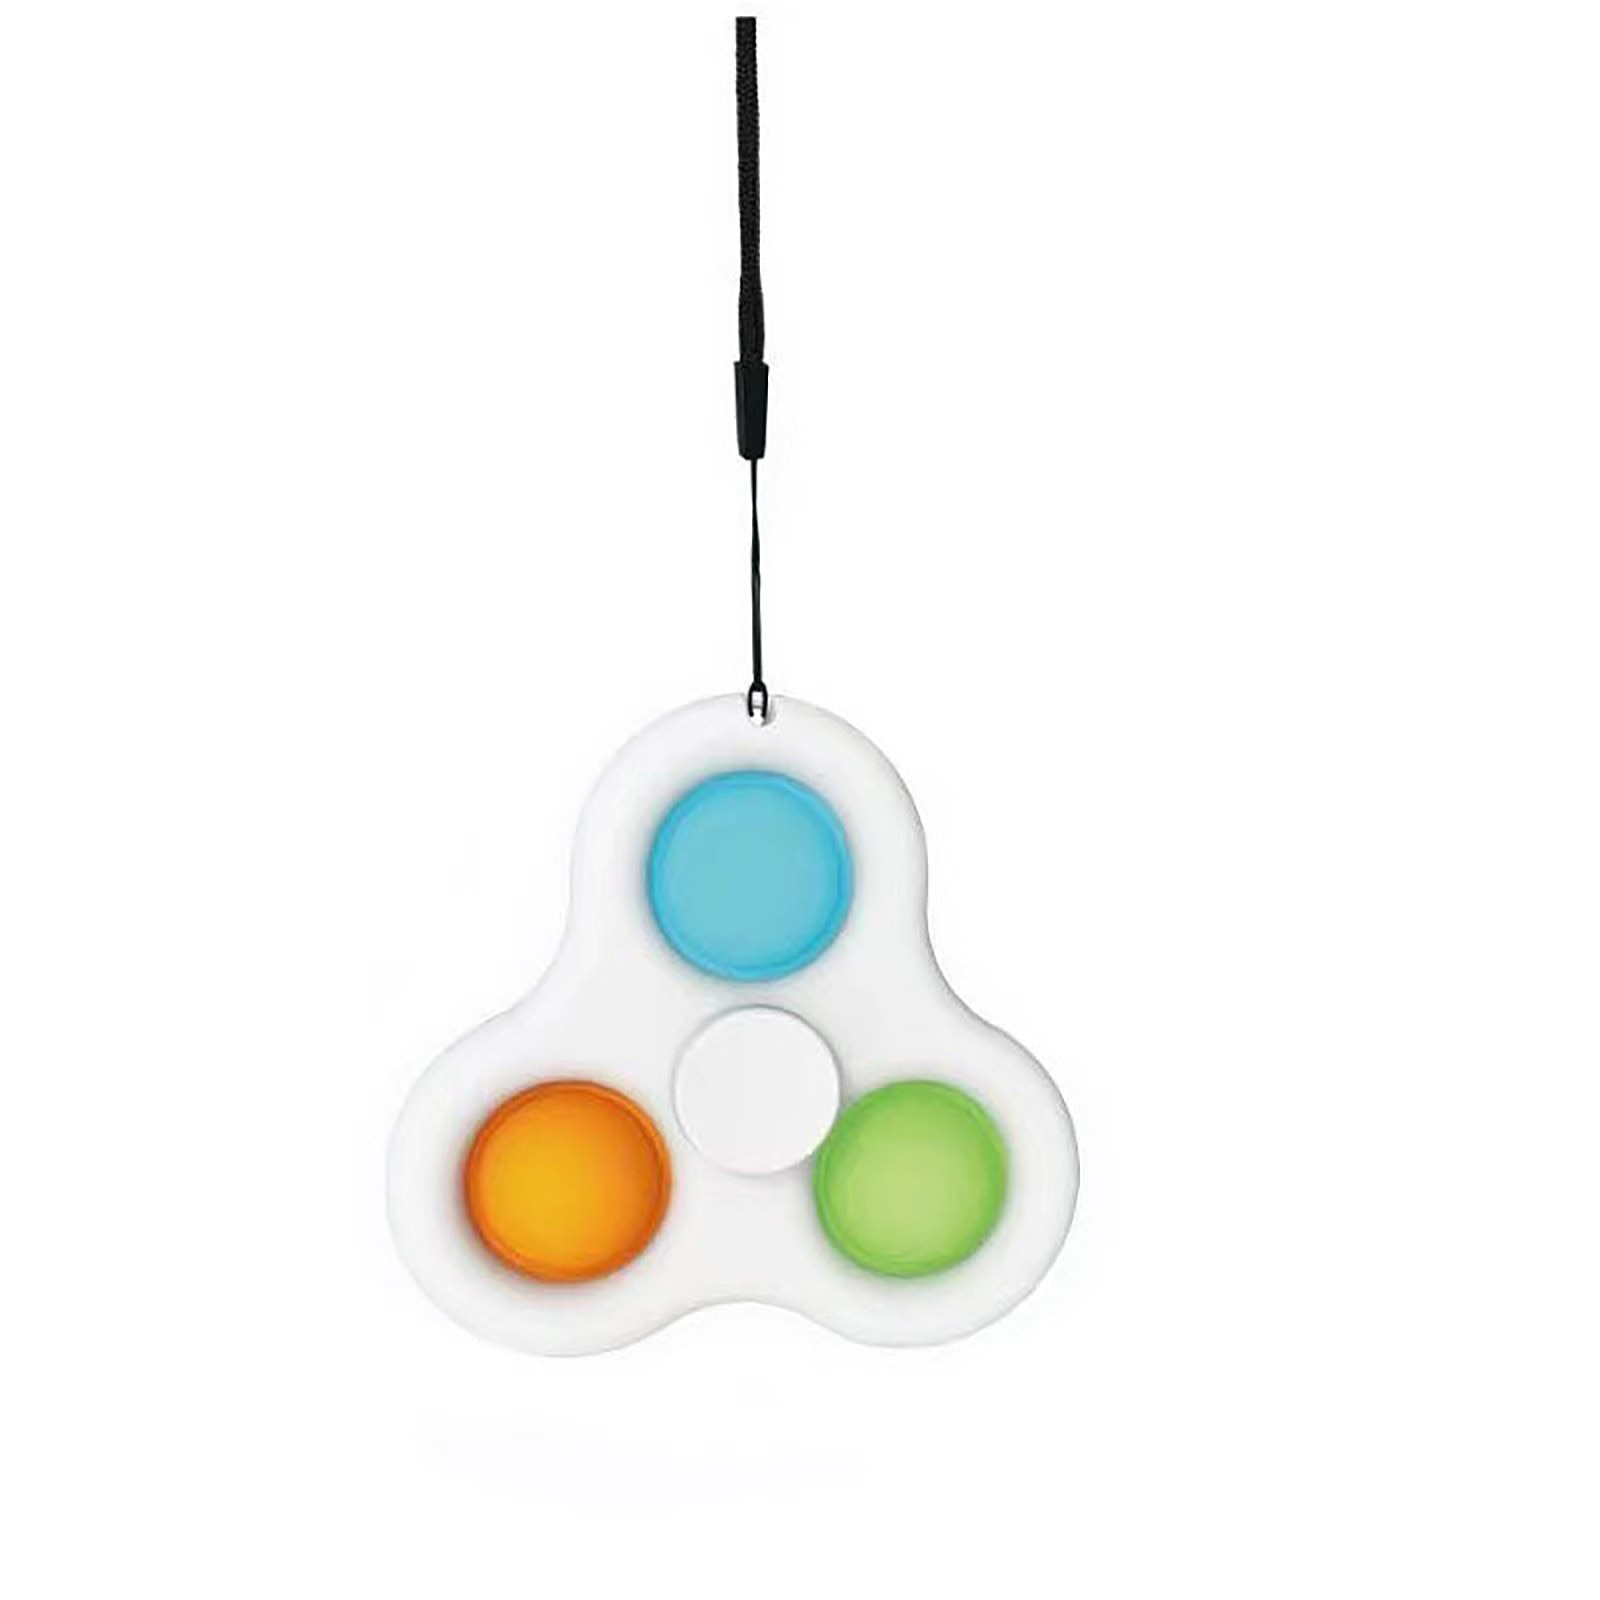 Simple Dimple Spinner Push Pop Fidget Toy Anti Stress Toy Anxiety Relief Toy Pop Sensory Toy 2 - Popping Fidgets